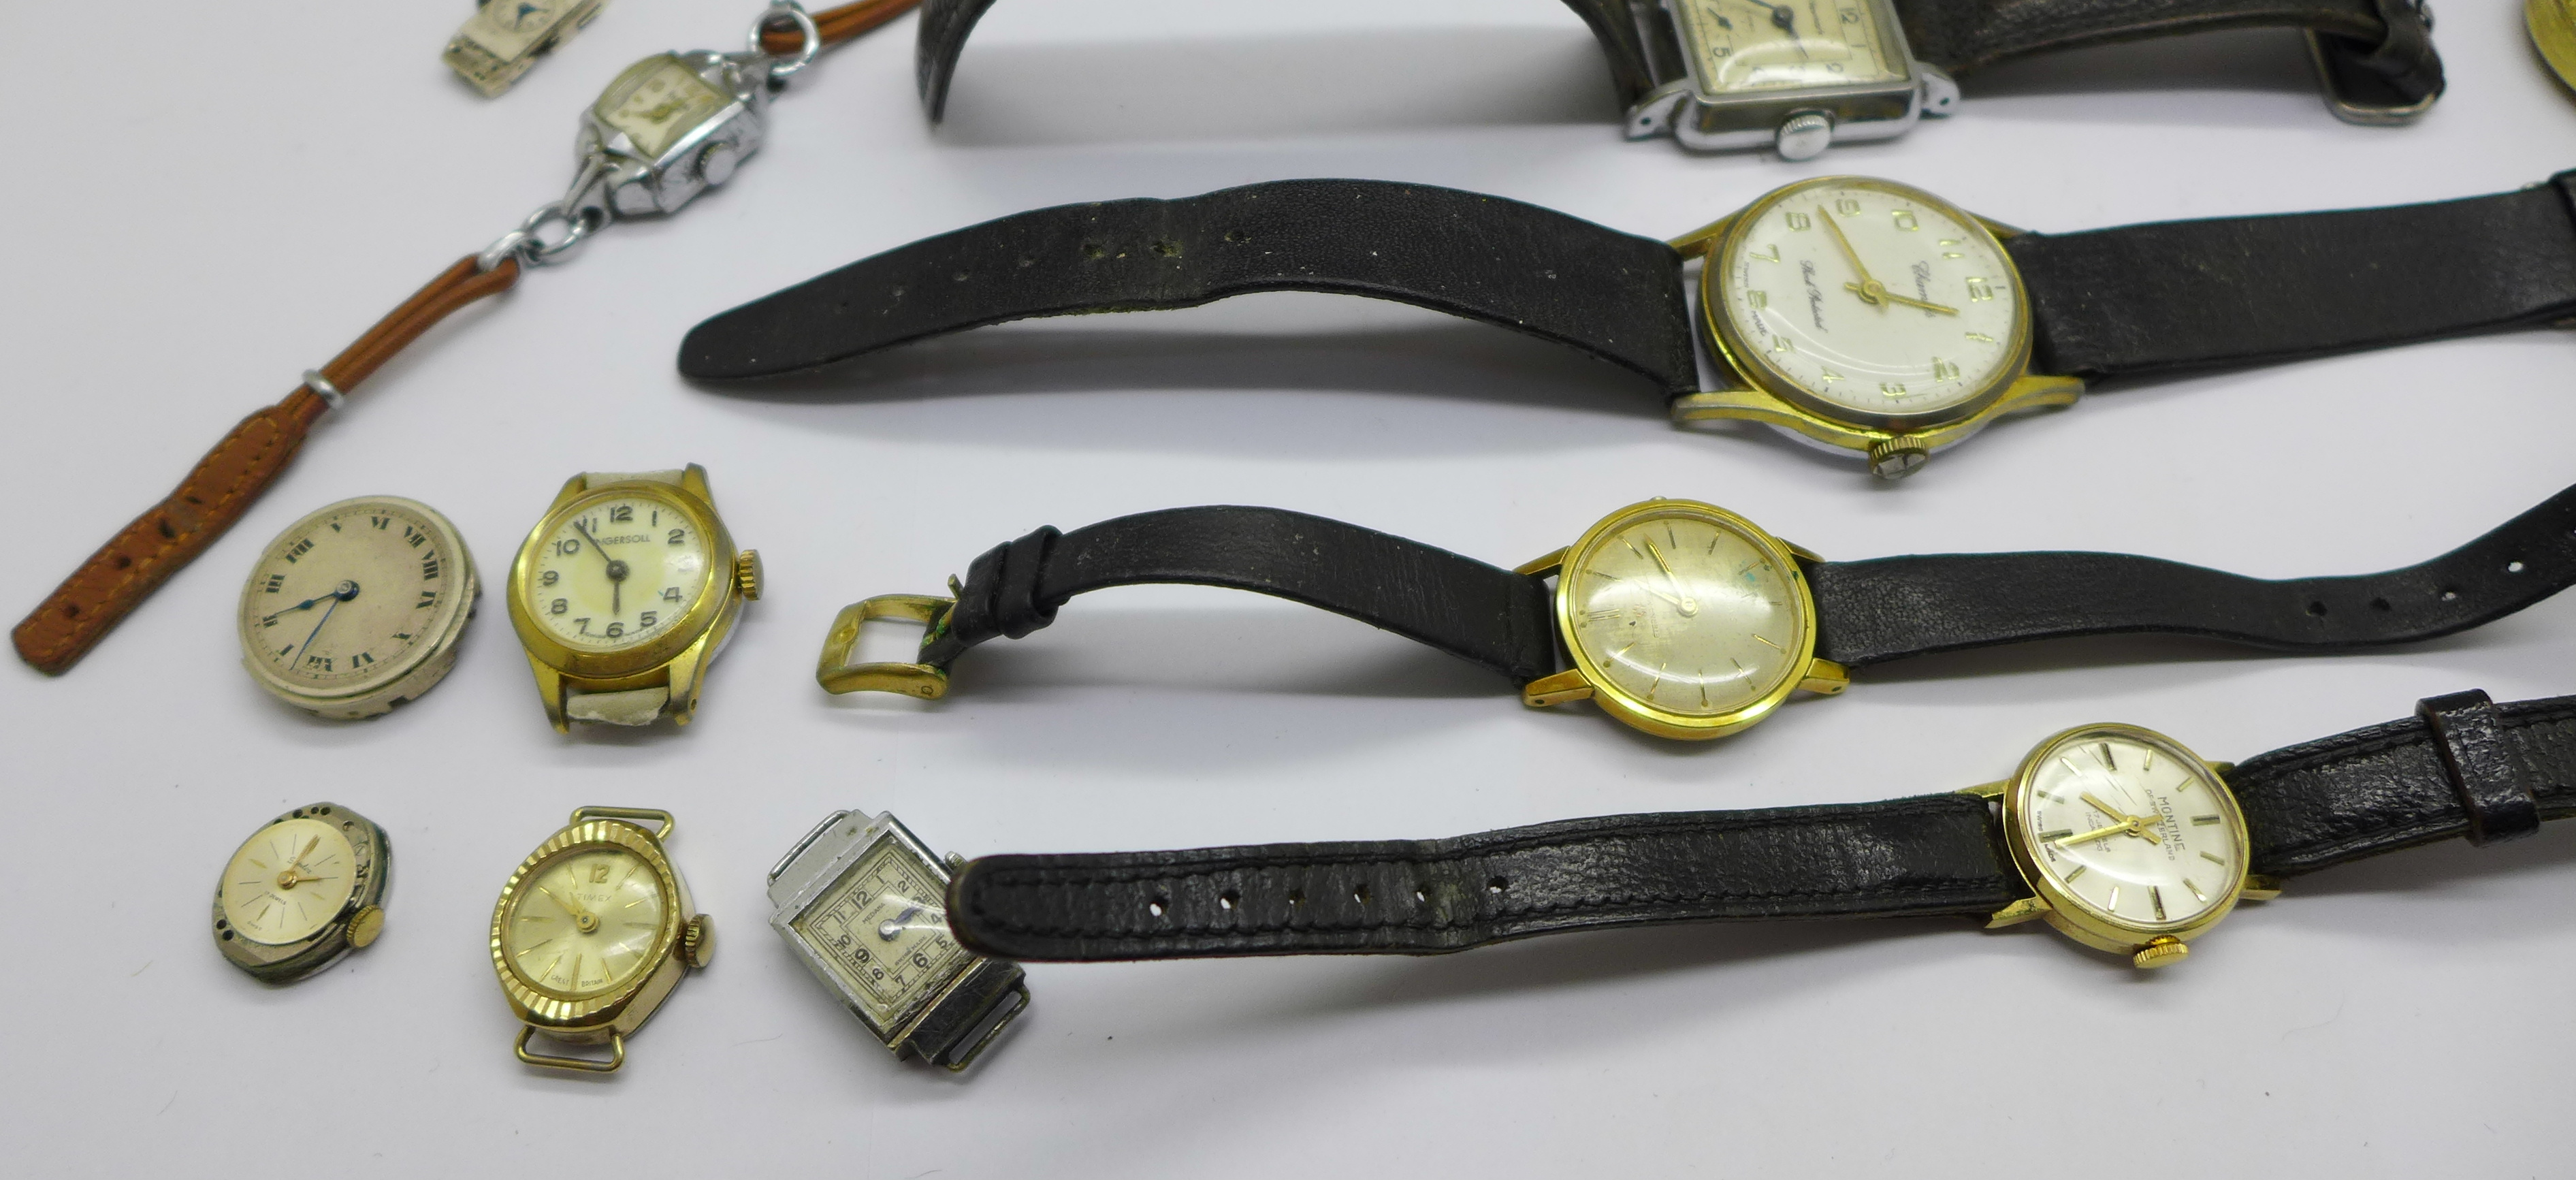 Mechanical wristwatches, a/f - Image 2 of 6